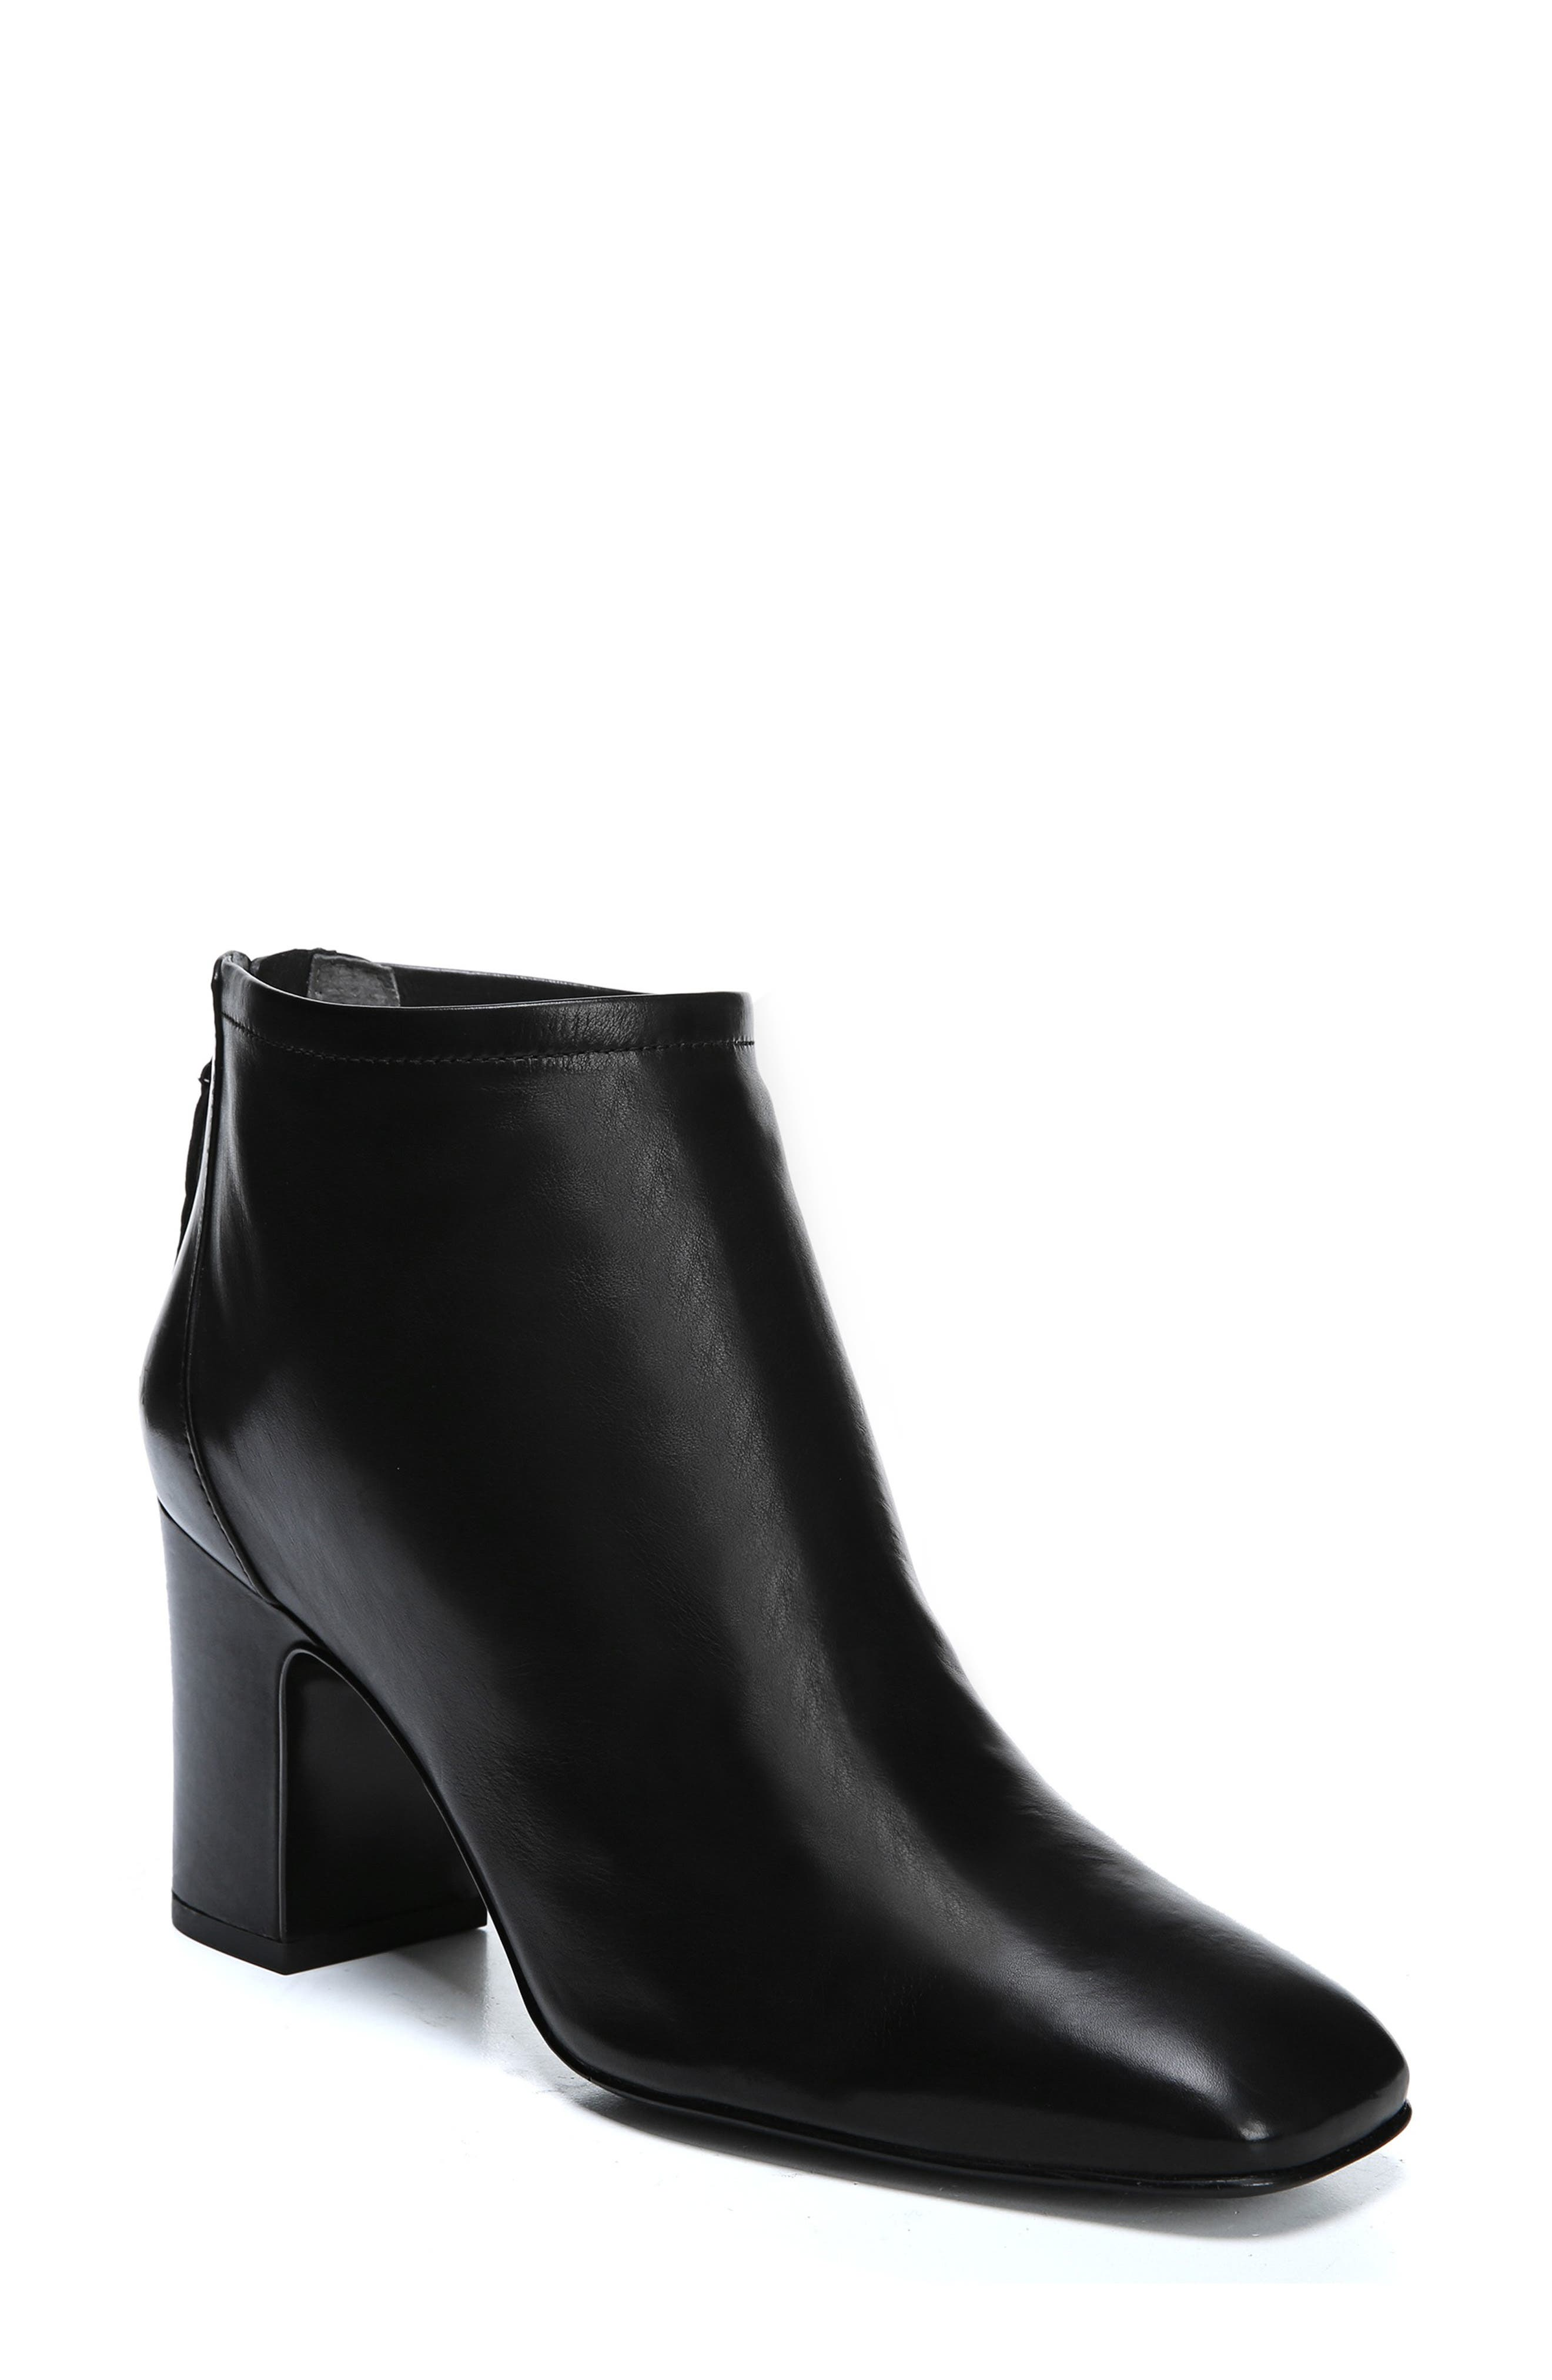 Jacoby Bootie,                         Main,                         color, BLACK STRETCH LEATHER